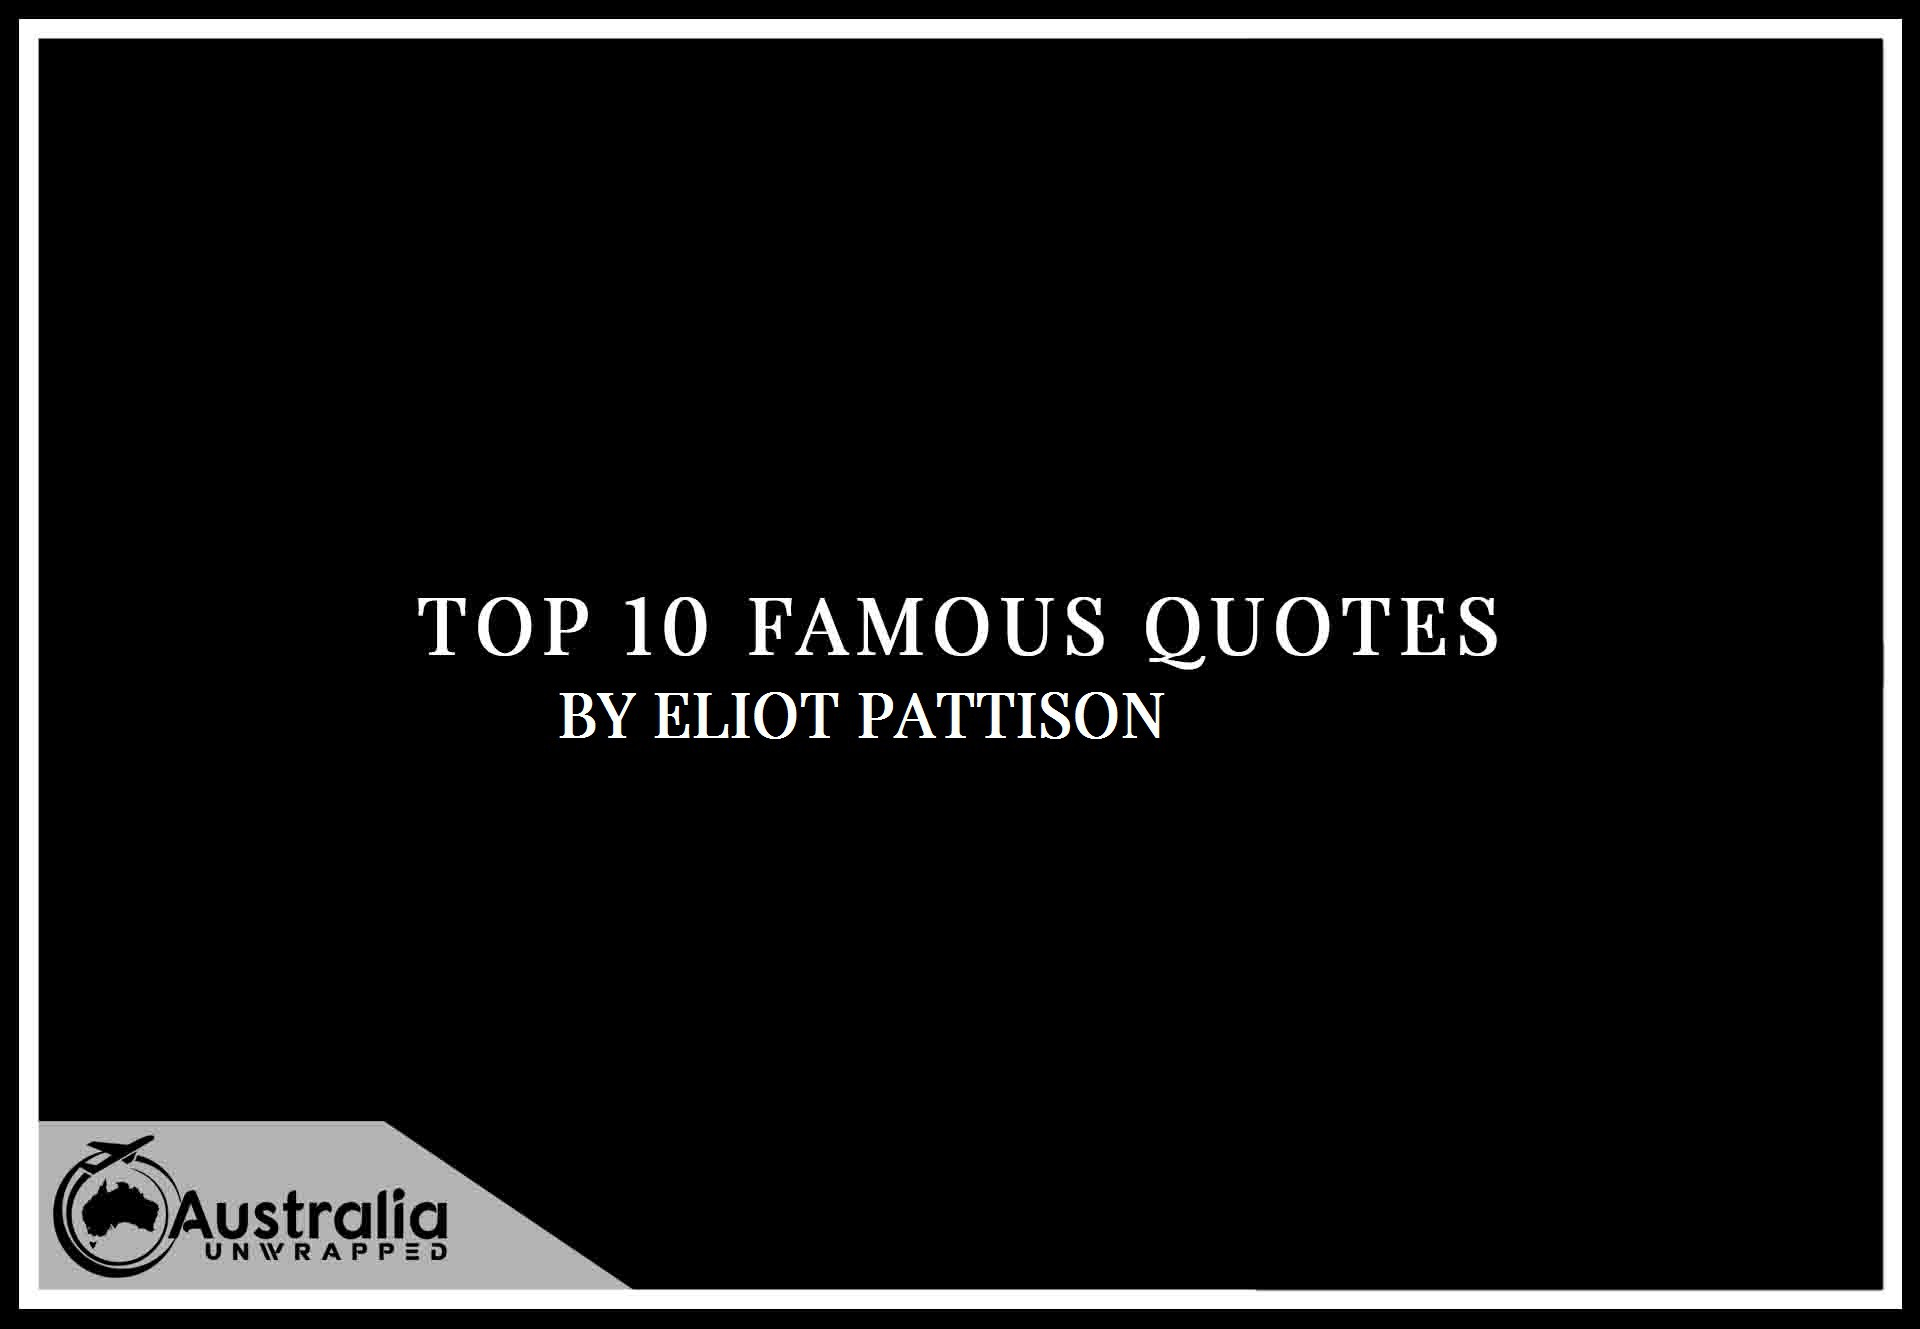 Eliot Pattison's Top 10 Popular and Famous Quotes